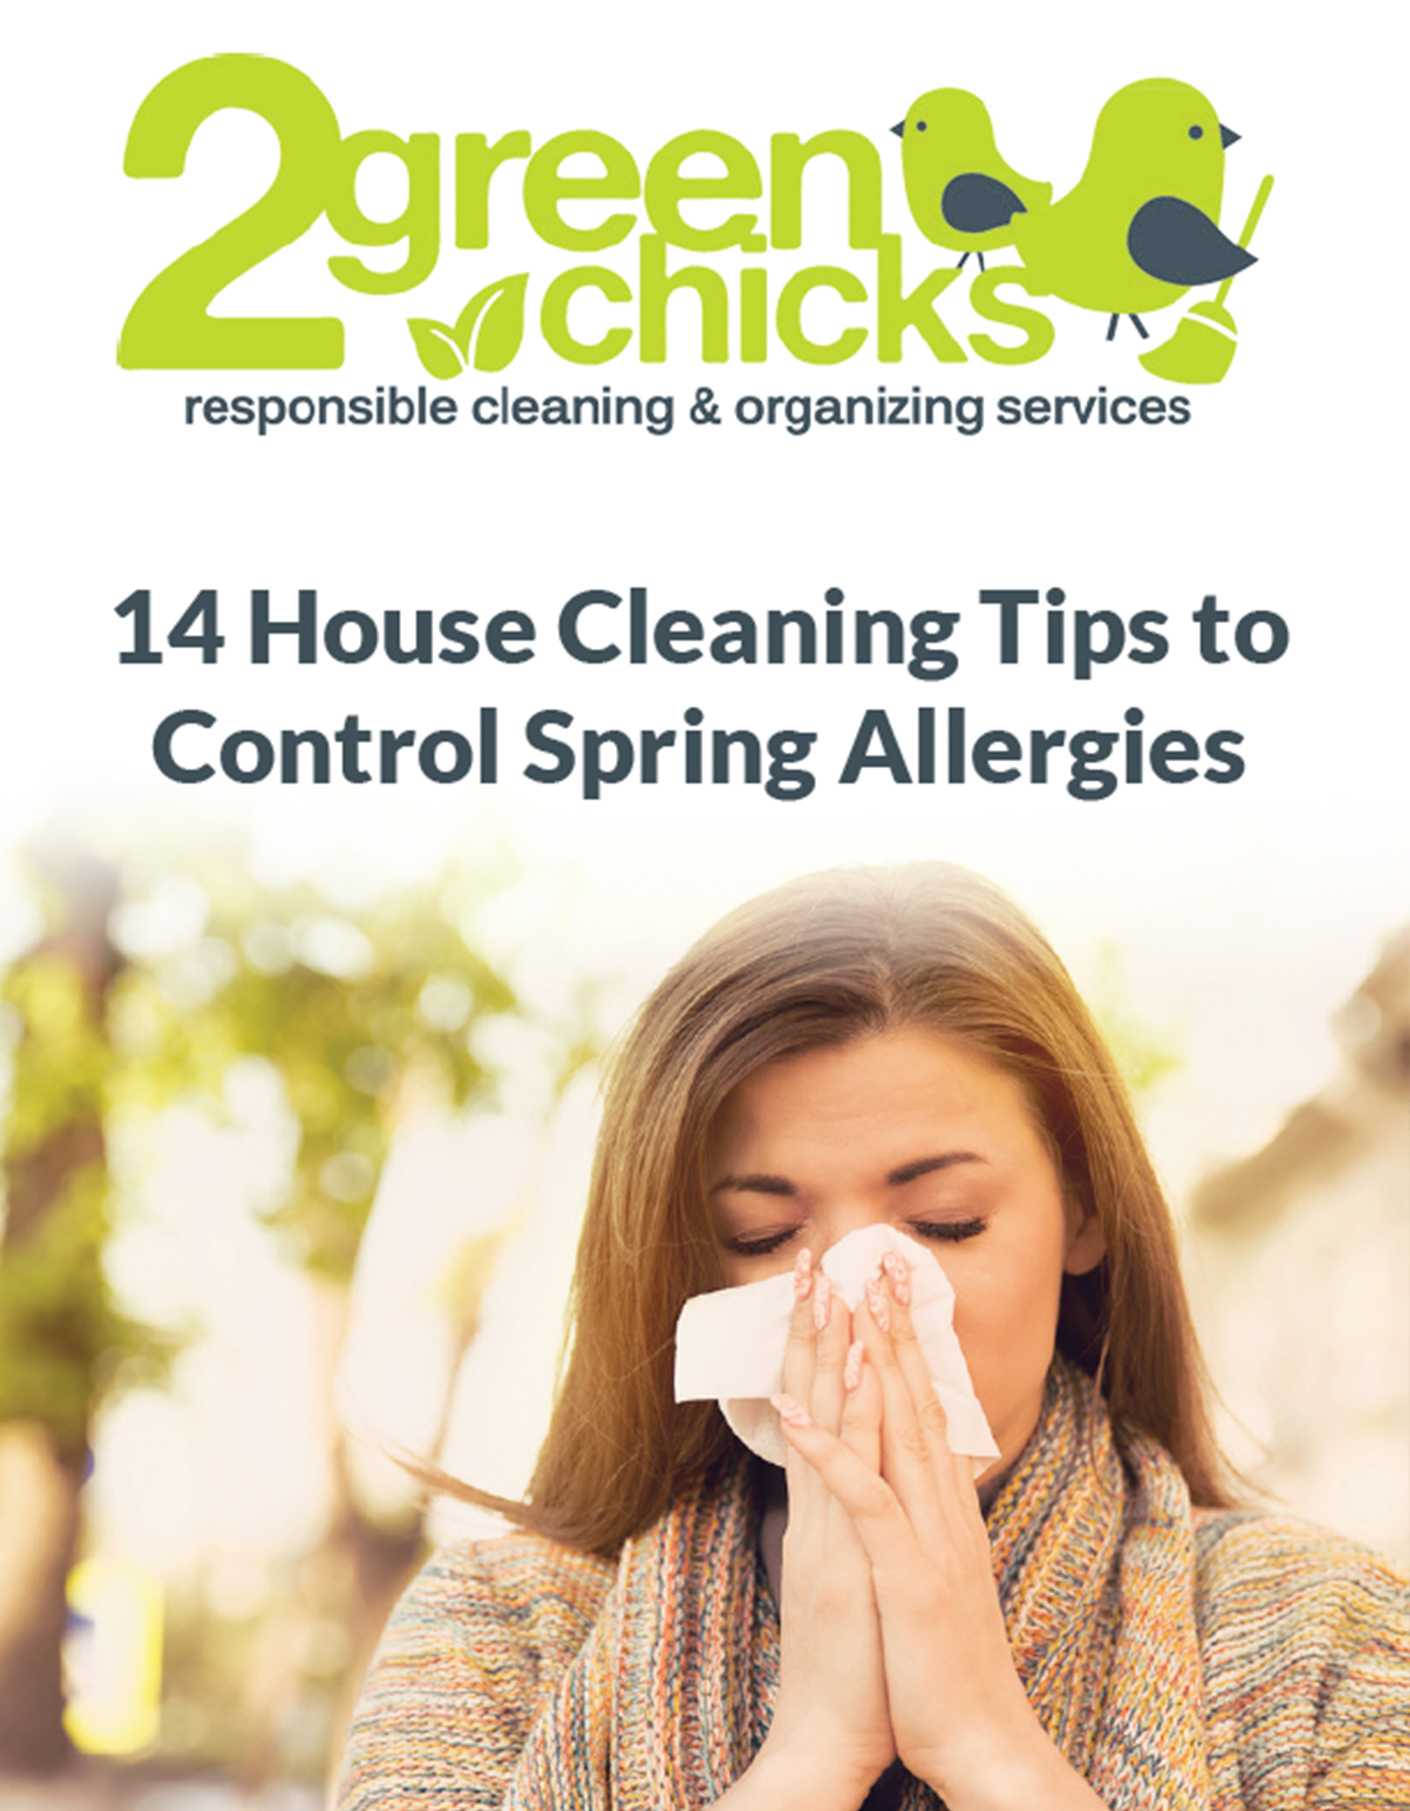 14 House Cleaning Tips to Control Spring Allergies